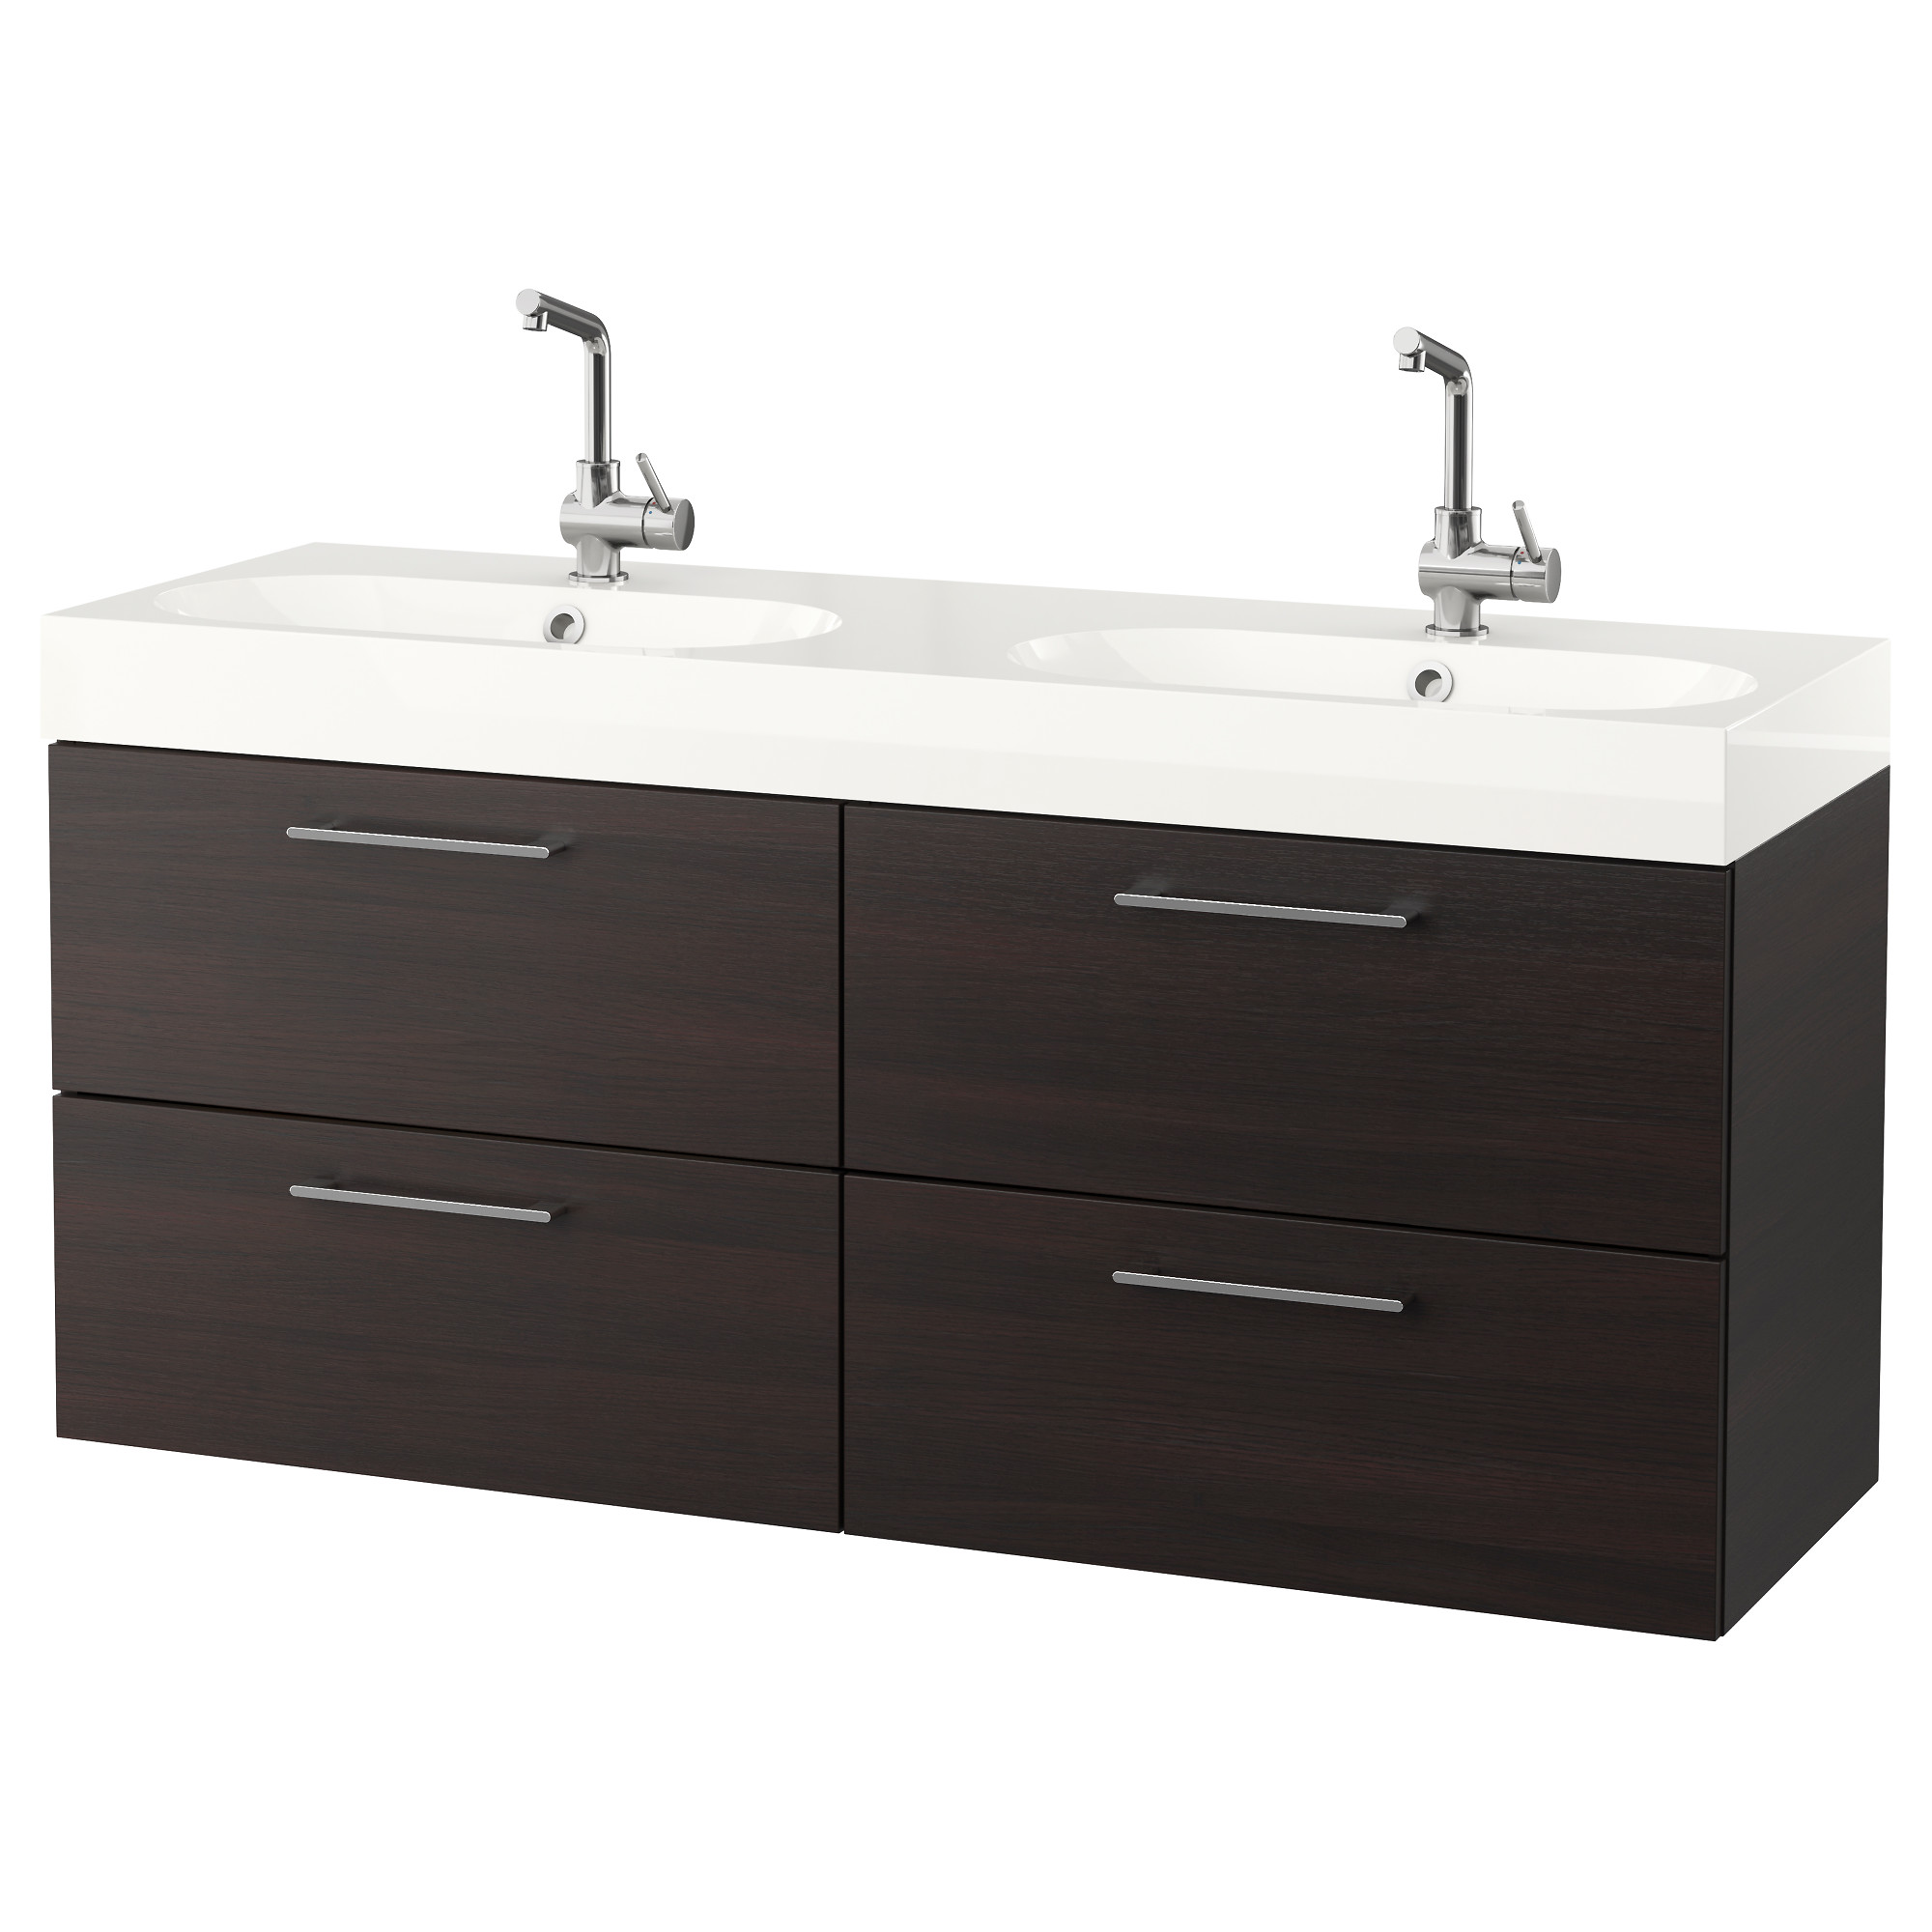 godmorgon brviken sink cabinet with 4 drawers black brown width 55 7